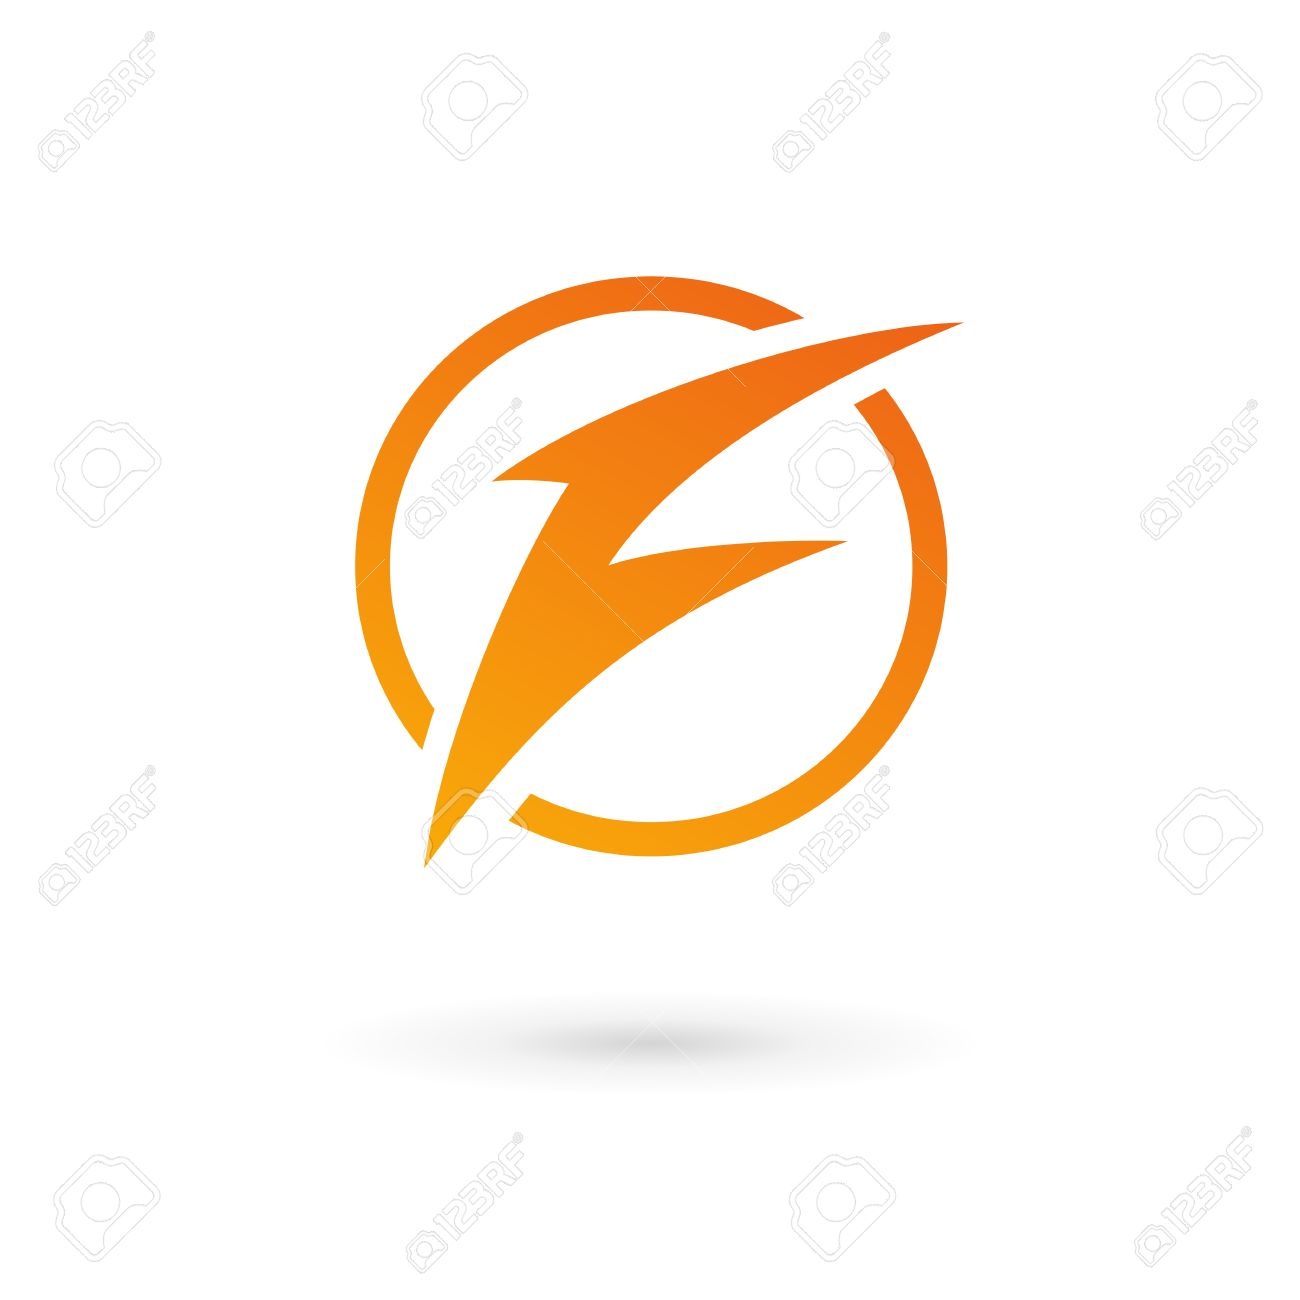 Letter F Lightning Logo Icon Design Template Elements Royalty Free